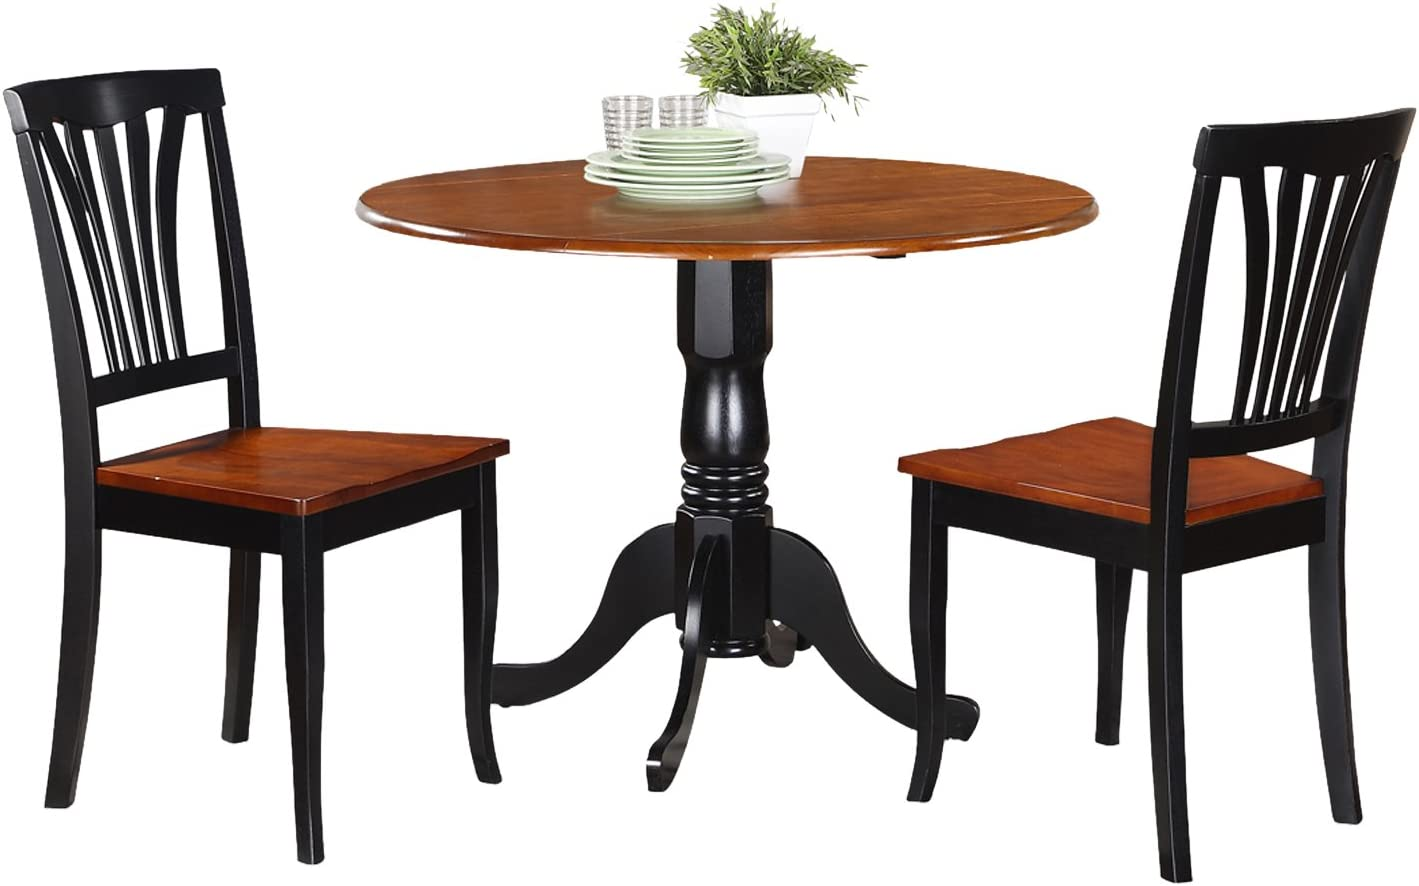 DLAV3-BCH-W 3 Pc Kitchen nook Dining set-Kitchen Table and 2 Kitchen Chairs